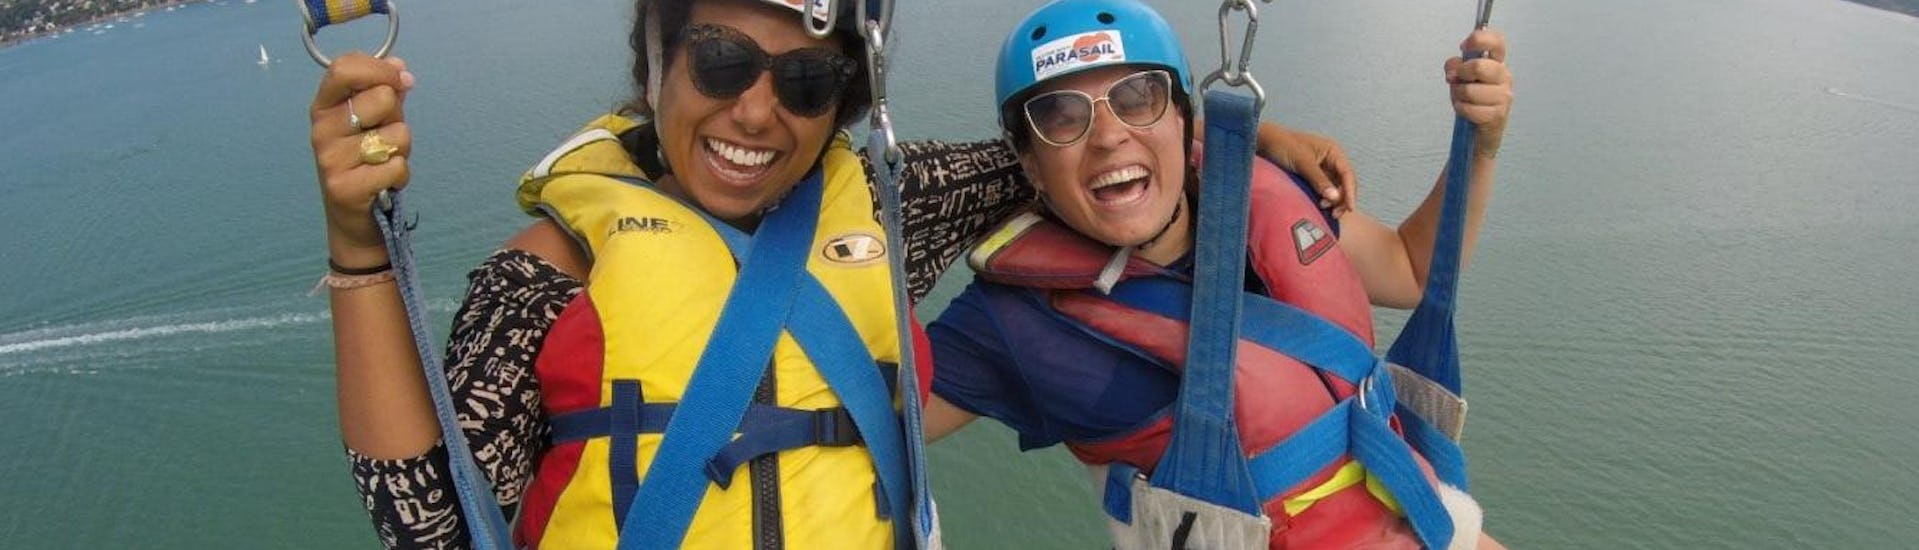 Gilrs are having a great time during the Parasailing in Paihia - For 1 Person organised by Bay of Islands Parasail.